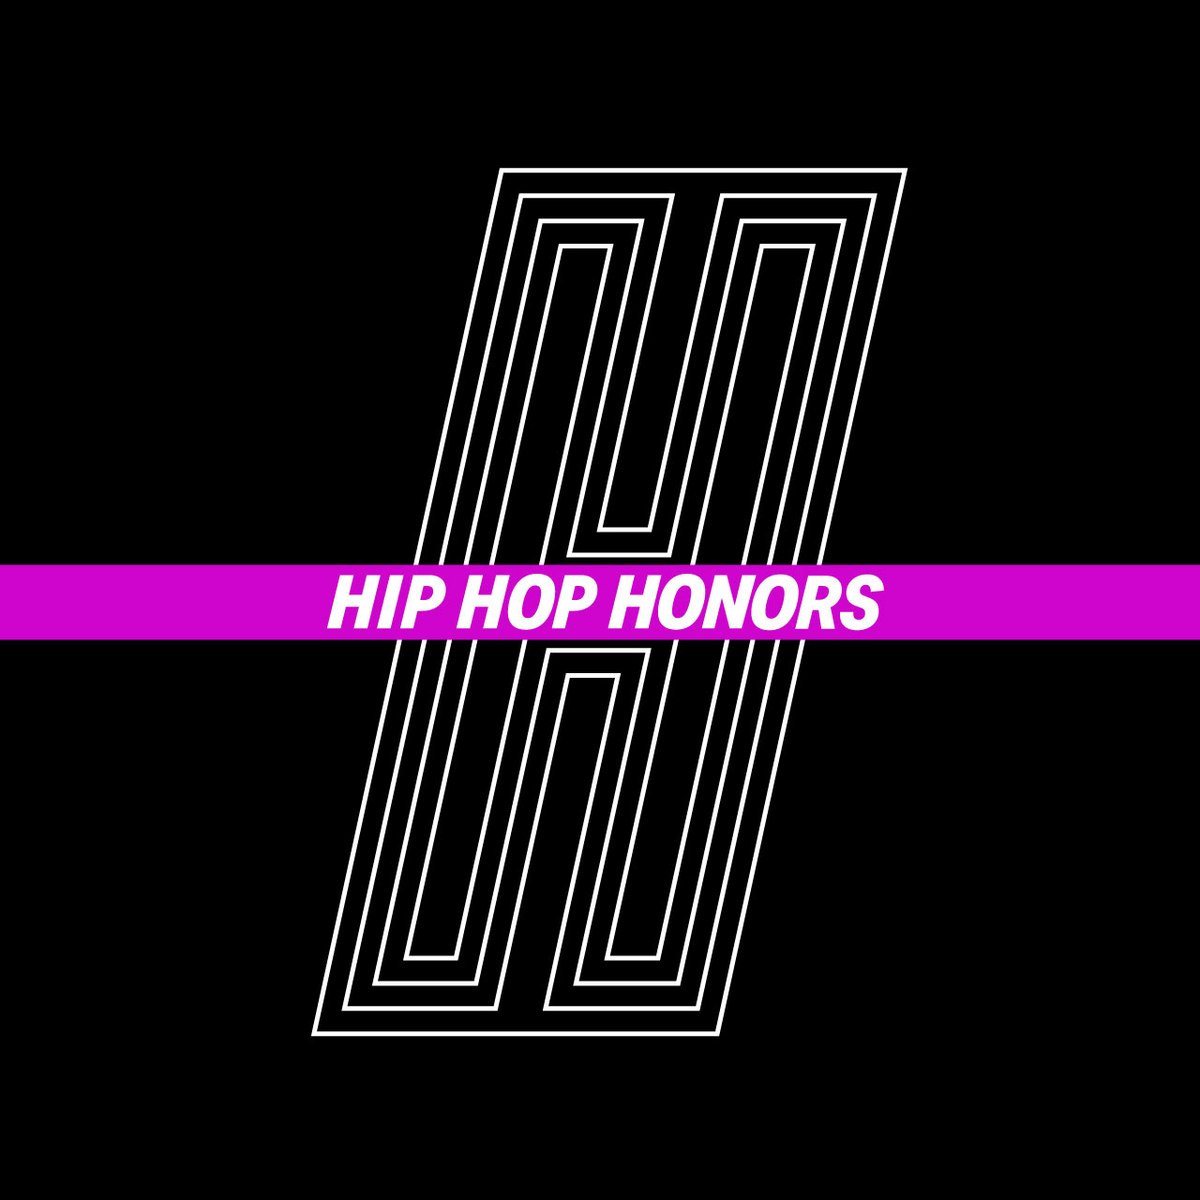 Hip Hop Honors - Wikipedia